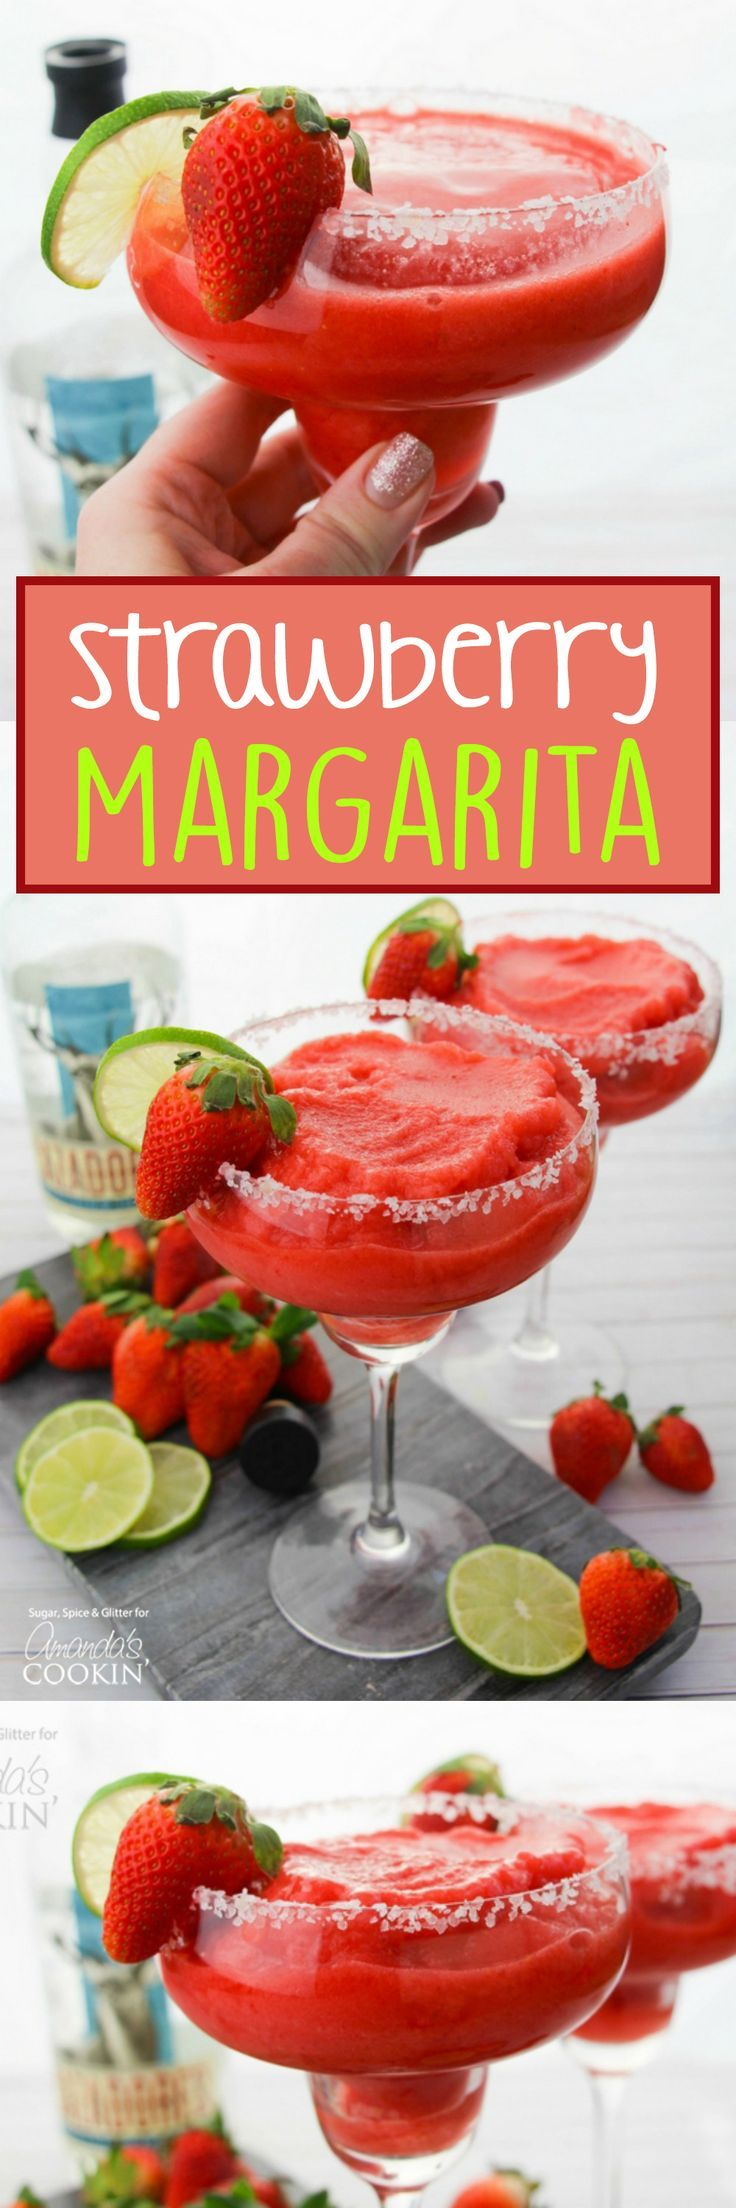 This Strawberry Margarita is the best way to enjoy tequila! A perfectly balanced cocktail for those who love the taste of tequila without the bite.